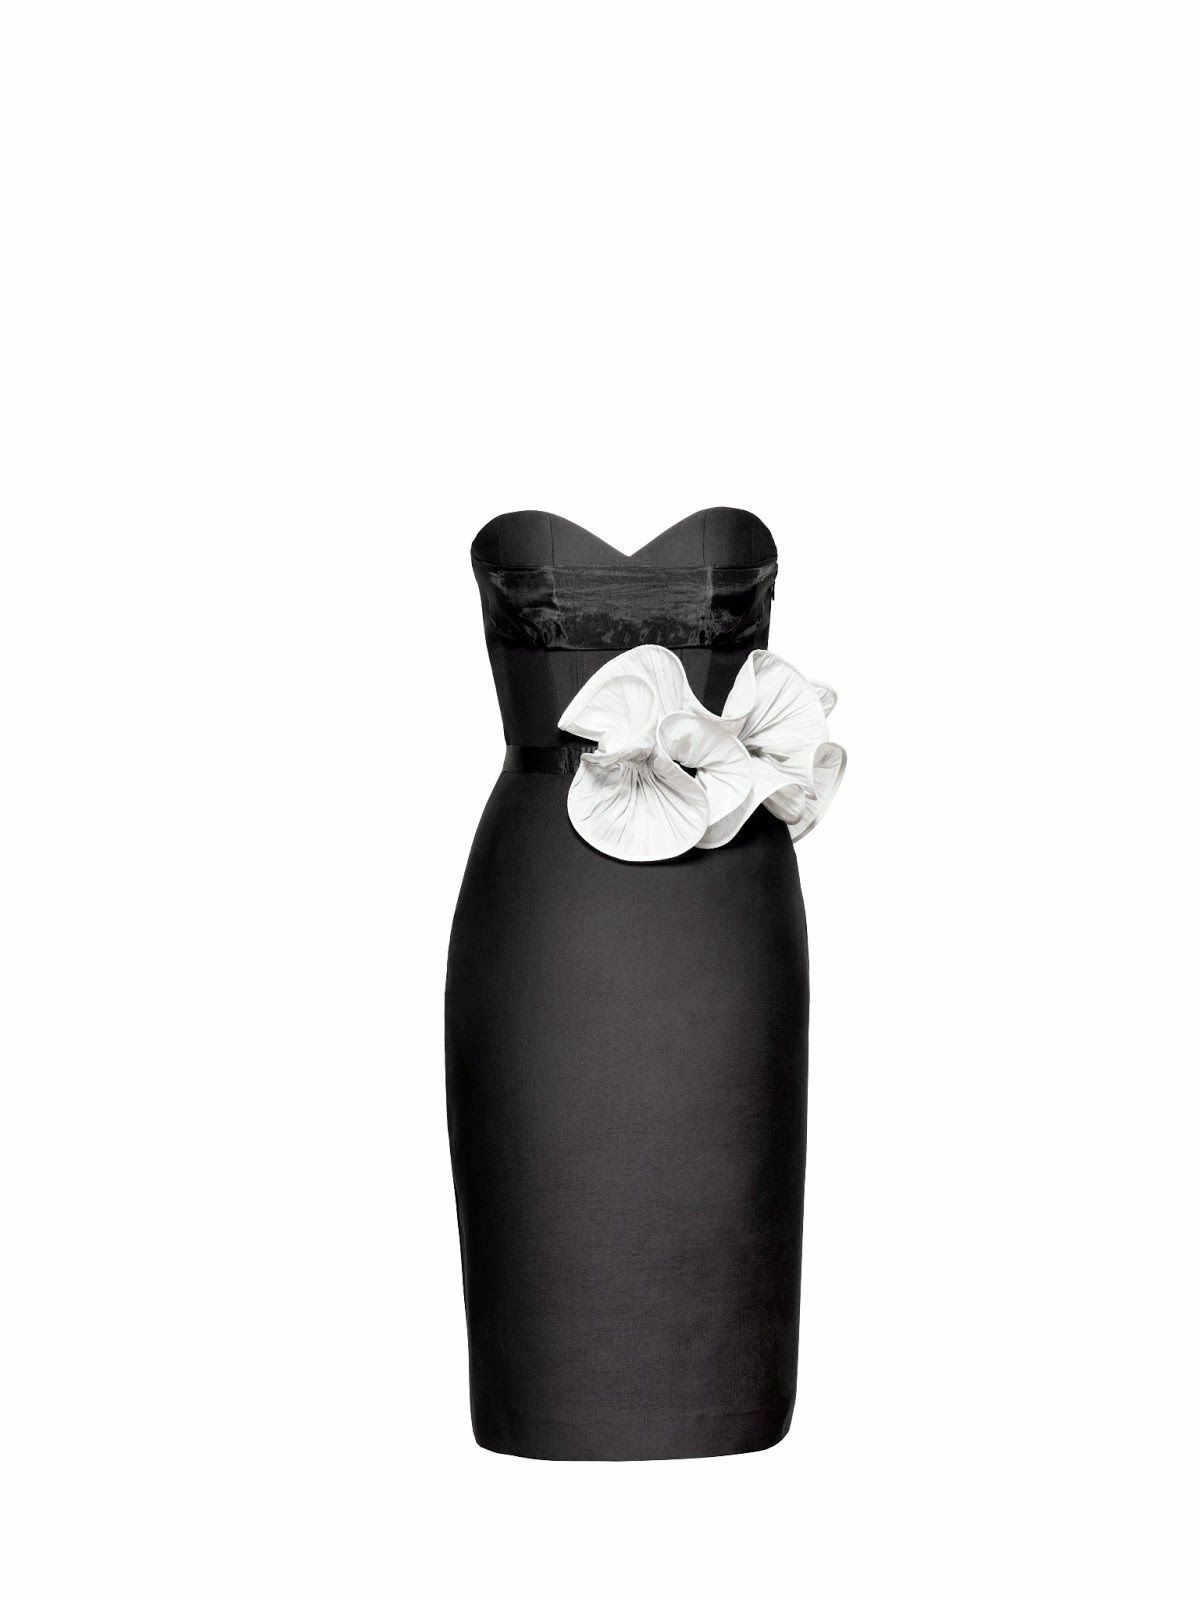 H&M Conscious Exclusive Collection Dress Sold Out